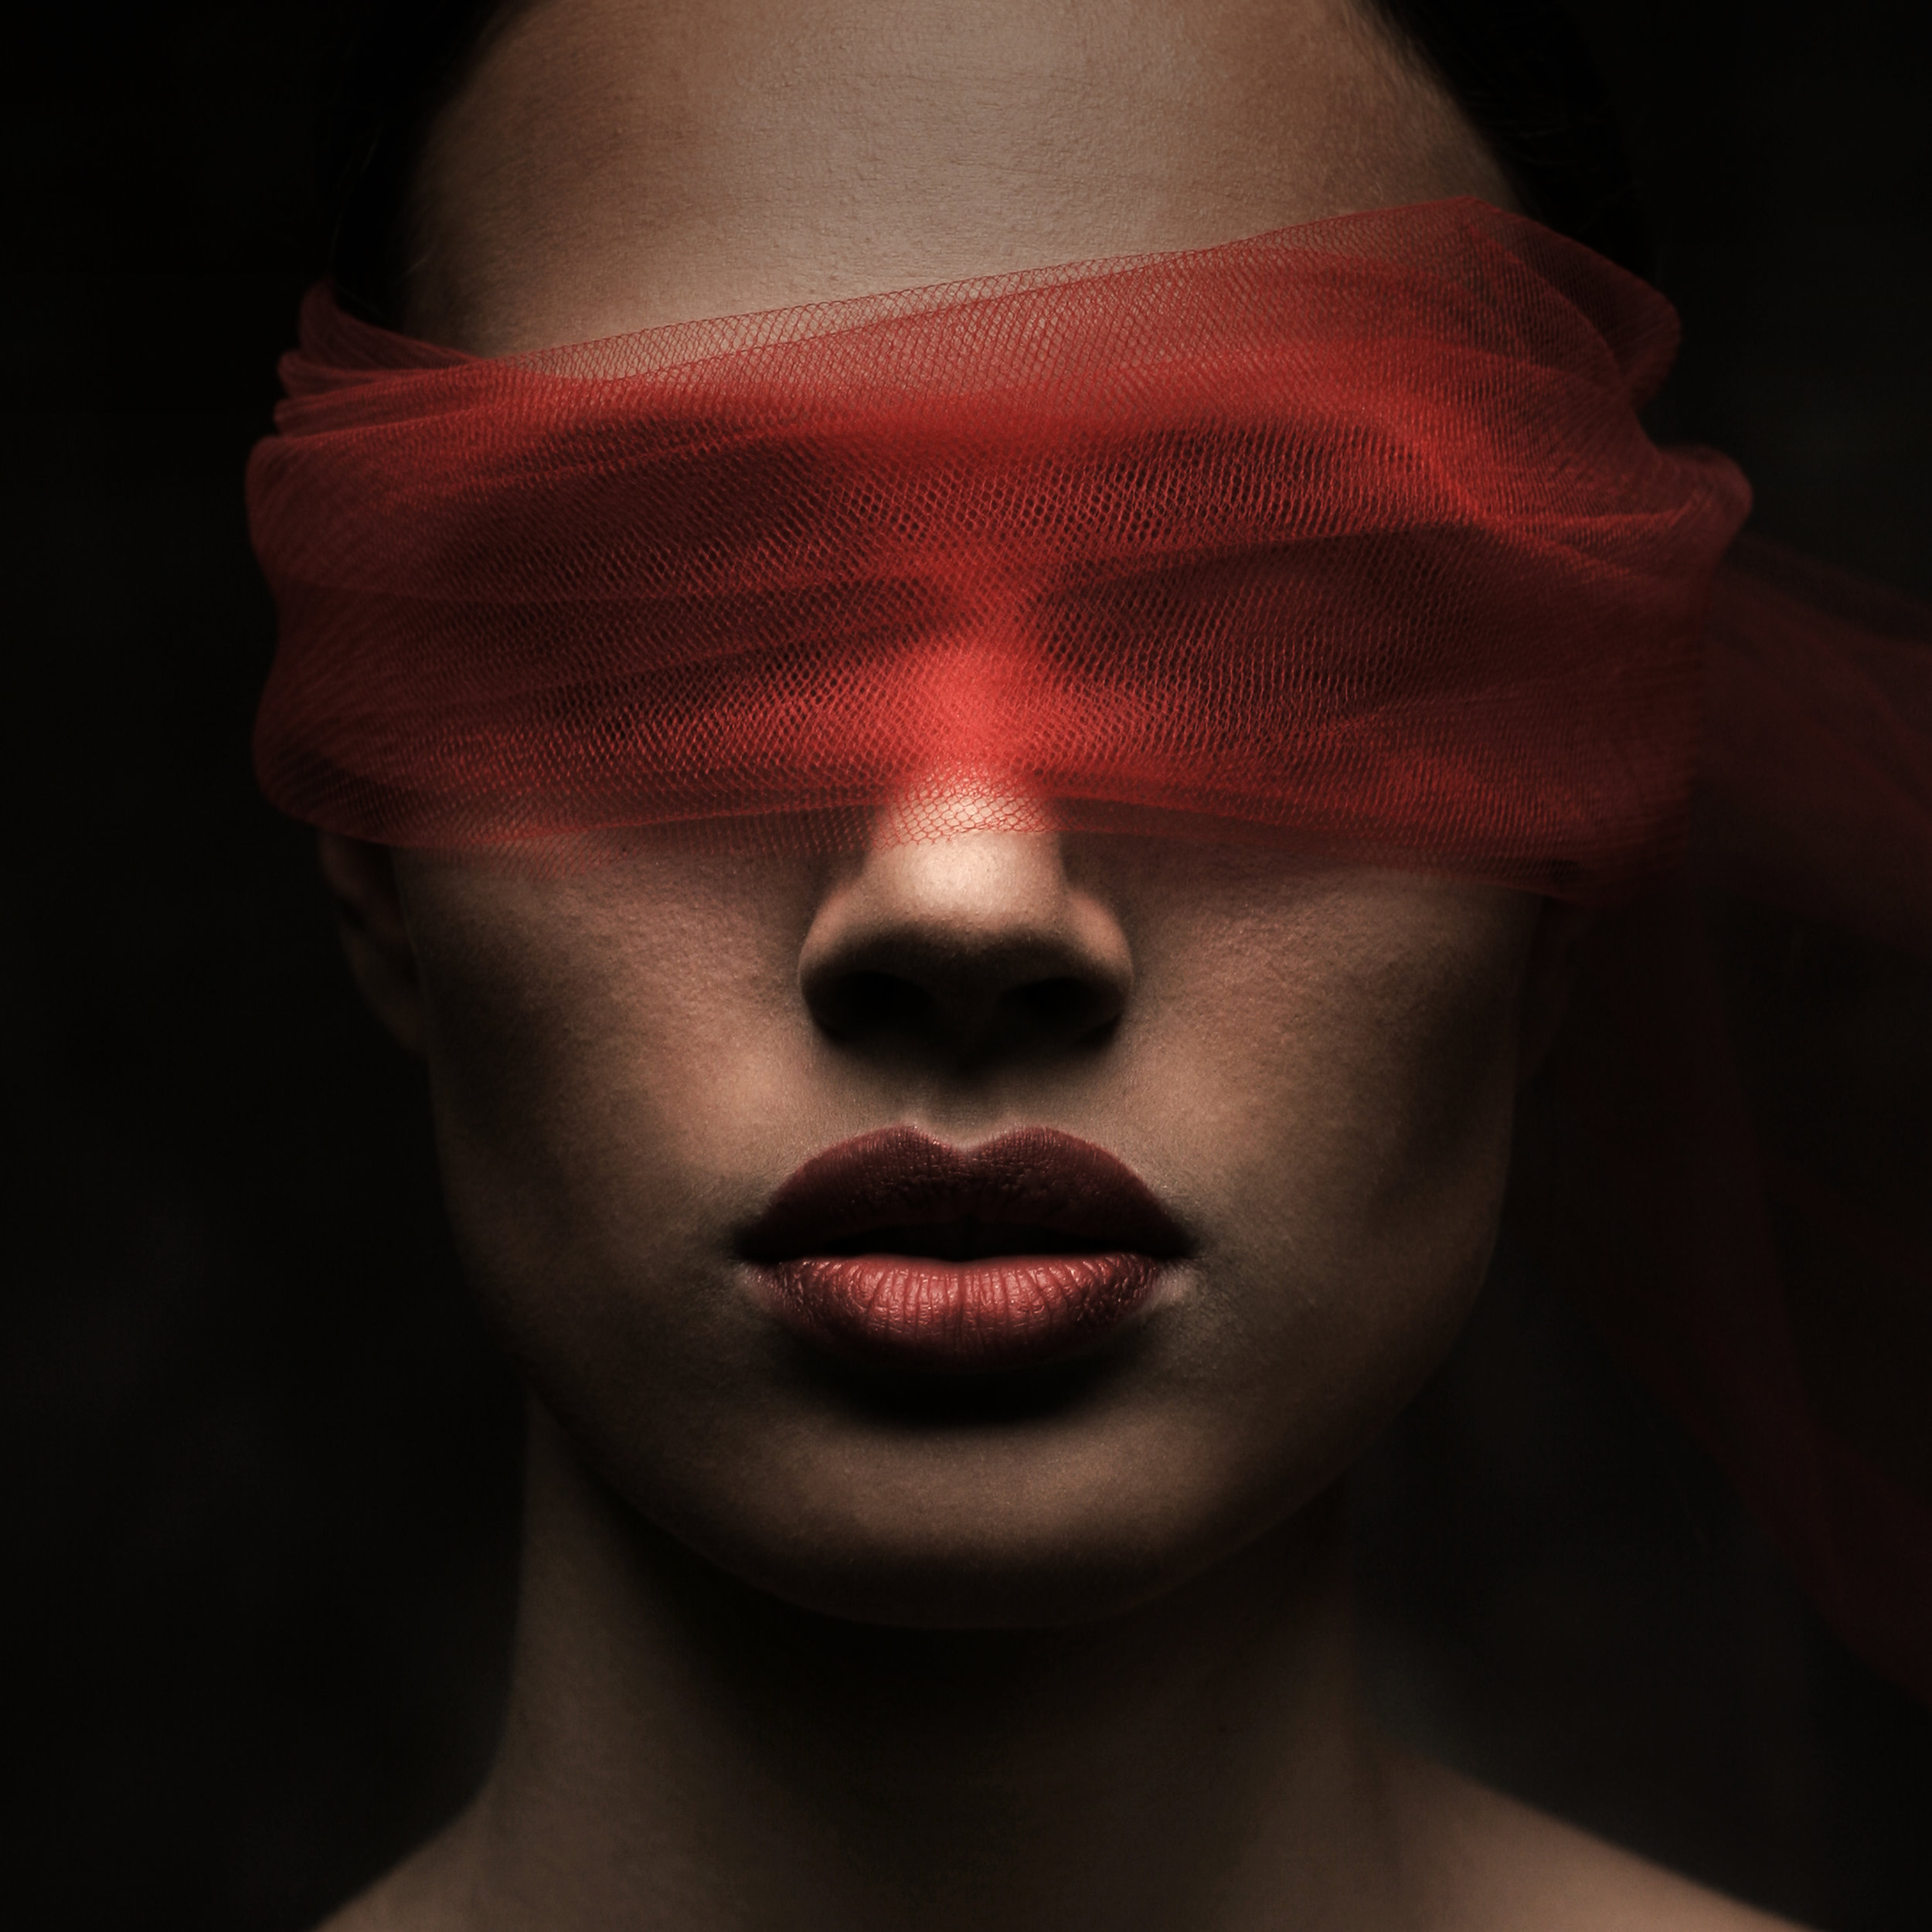 pretty face with red blindfold.jpg